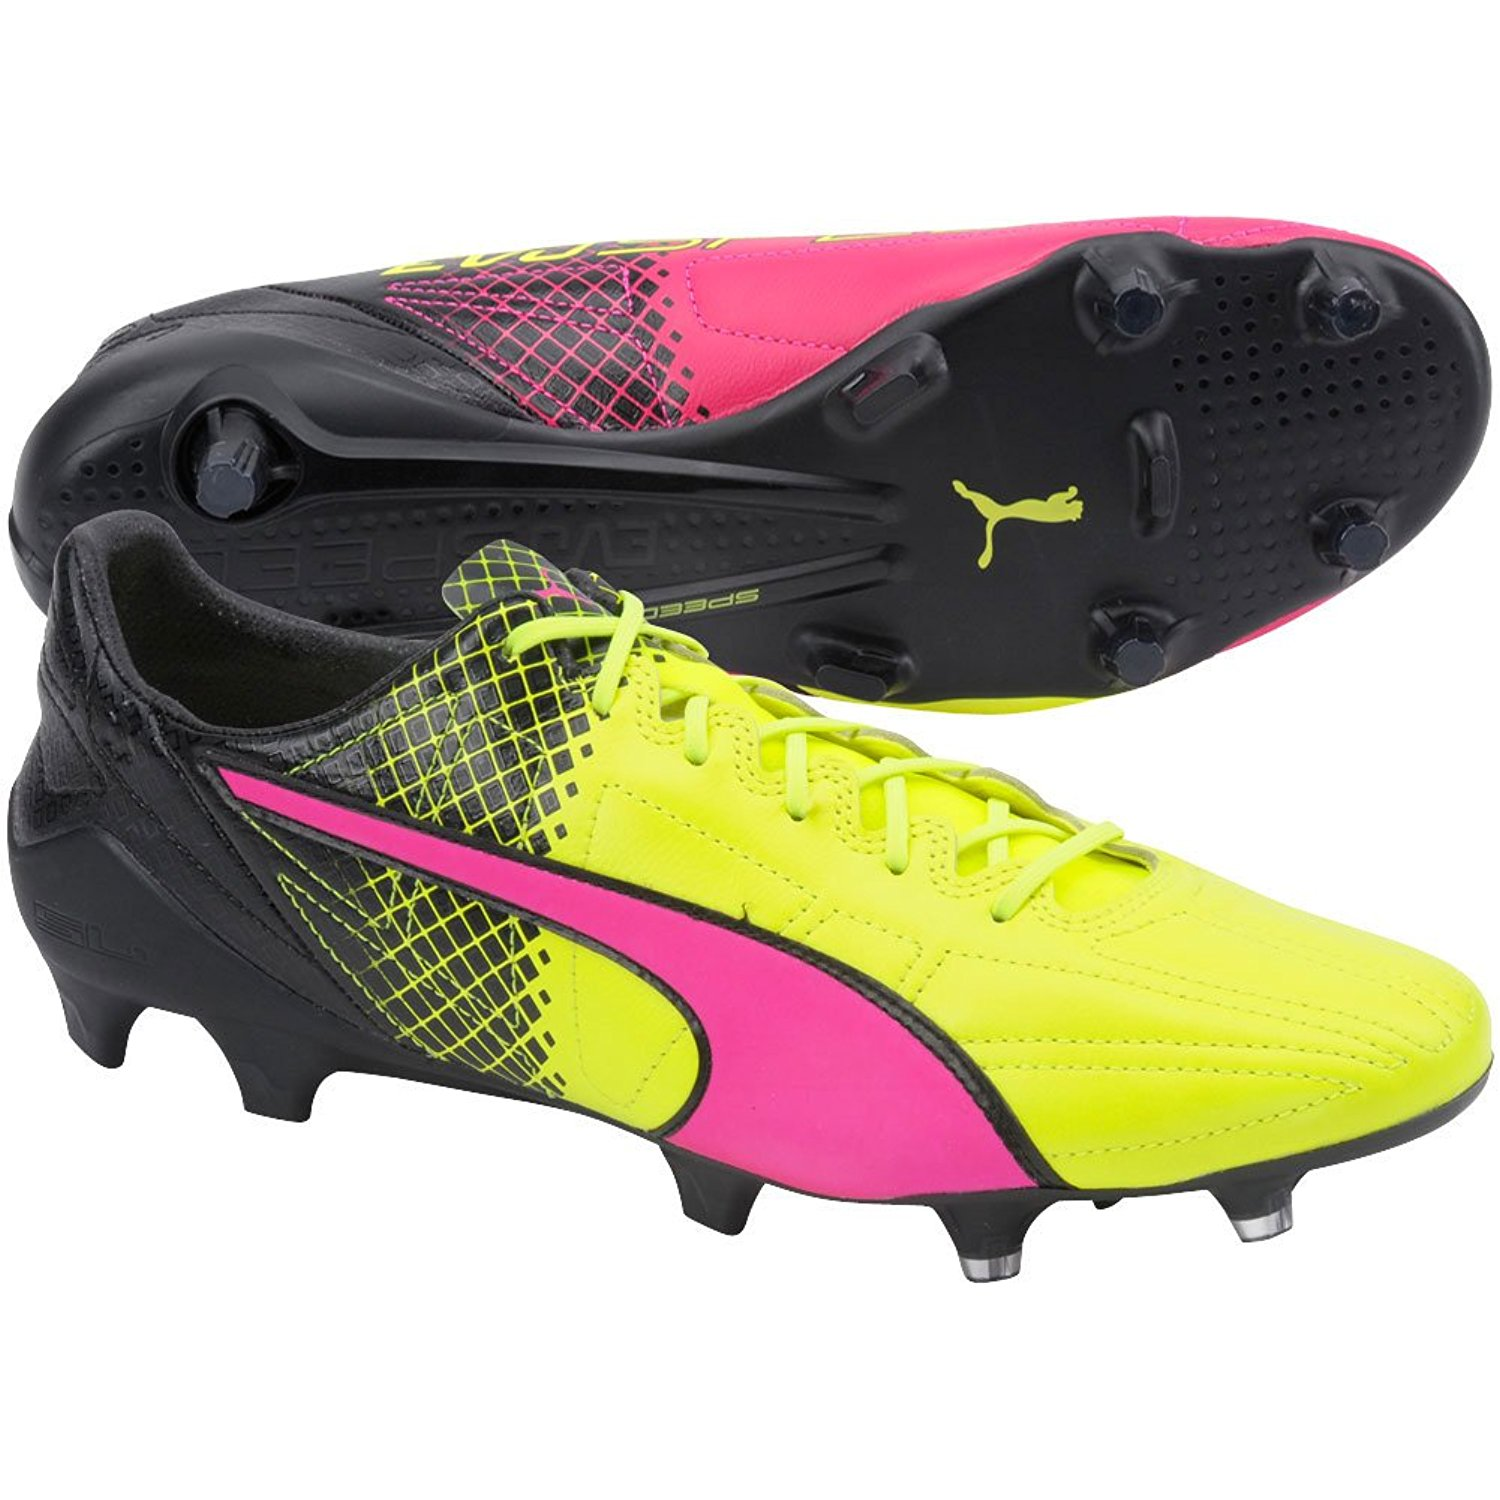 c6b817d8494 Buy PUMA evoSPEED 5.2 Tricks Firm Ground JR Soccer Cleat (Little Kid ...